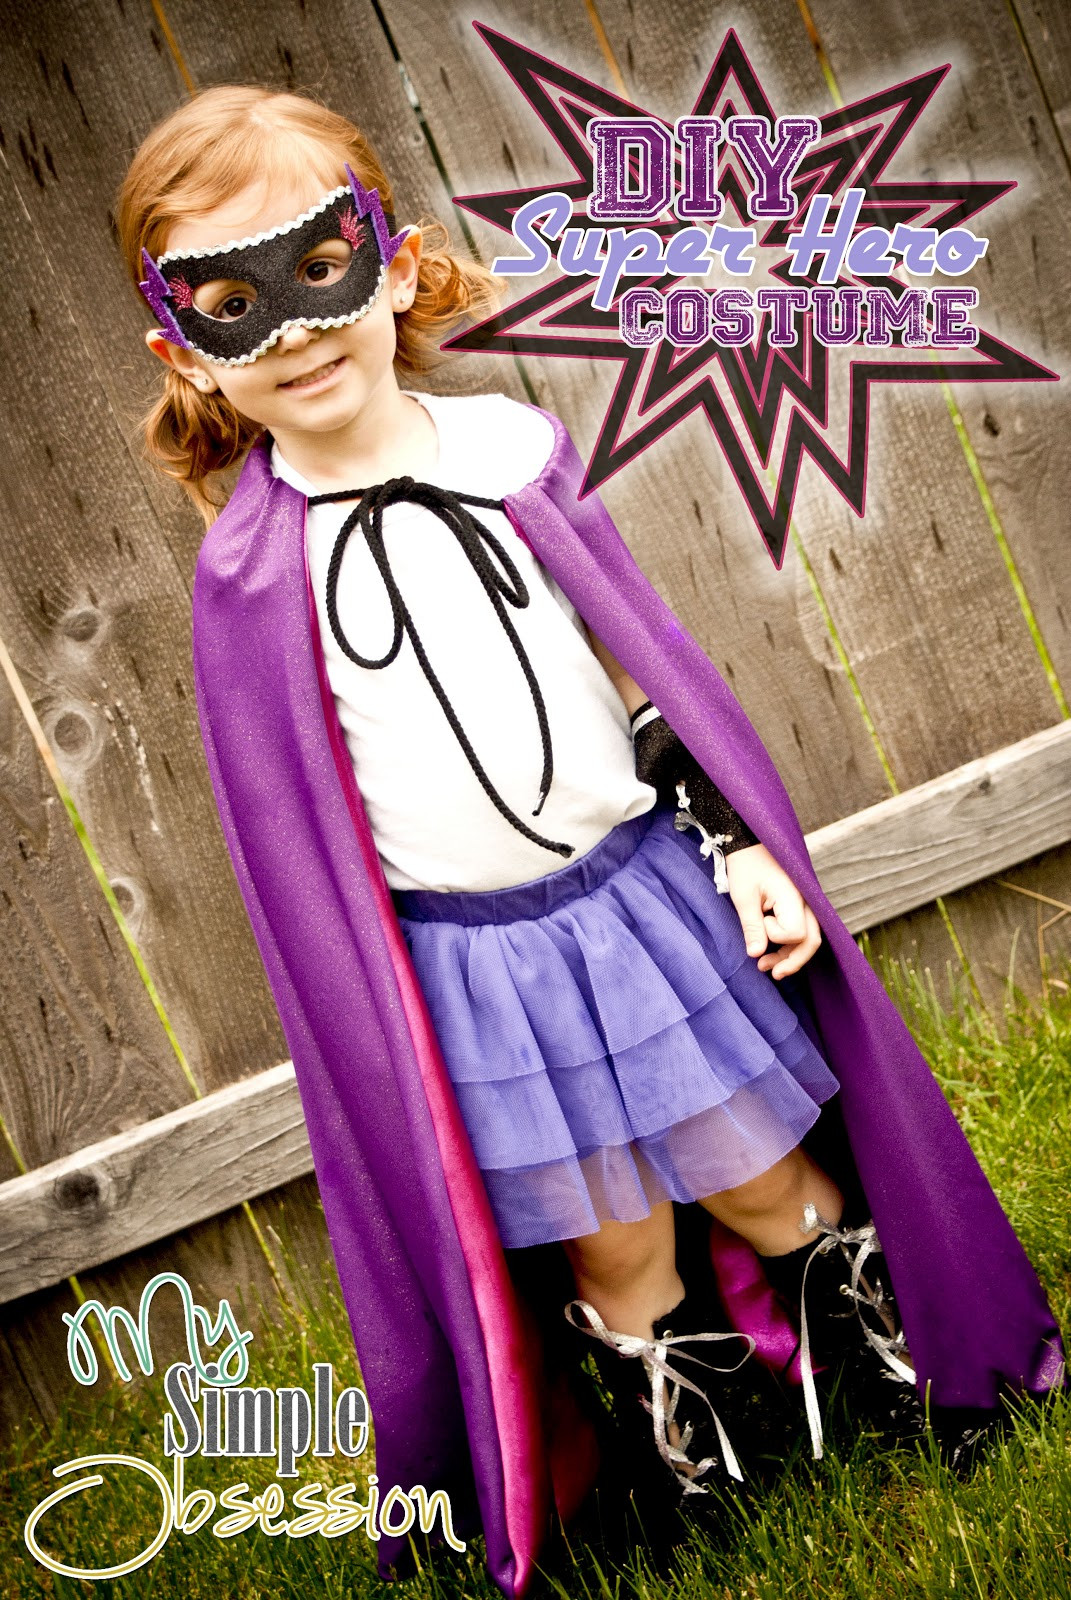 Best ideas about Superhero DIY Costume . Save or Pin My Simple Obsession DIY Super Hero Costume Now.